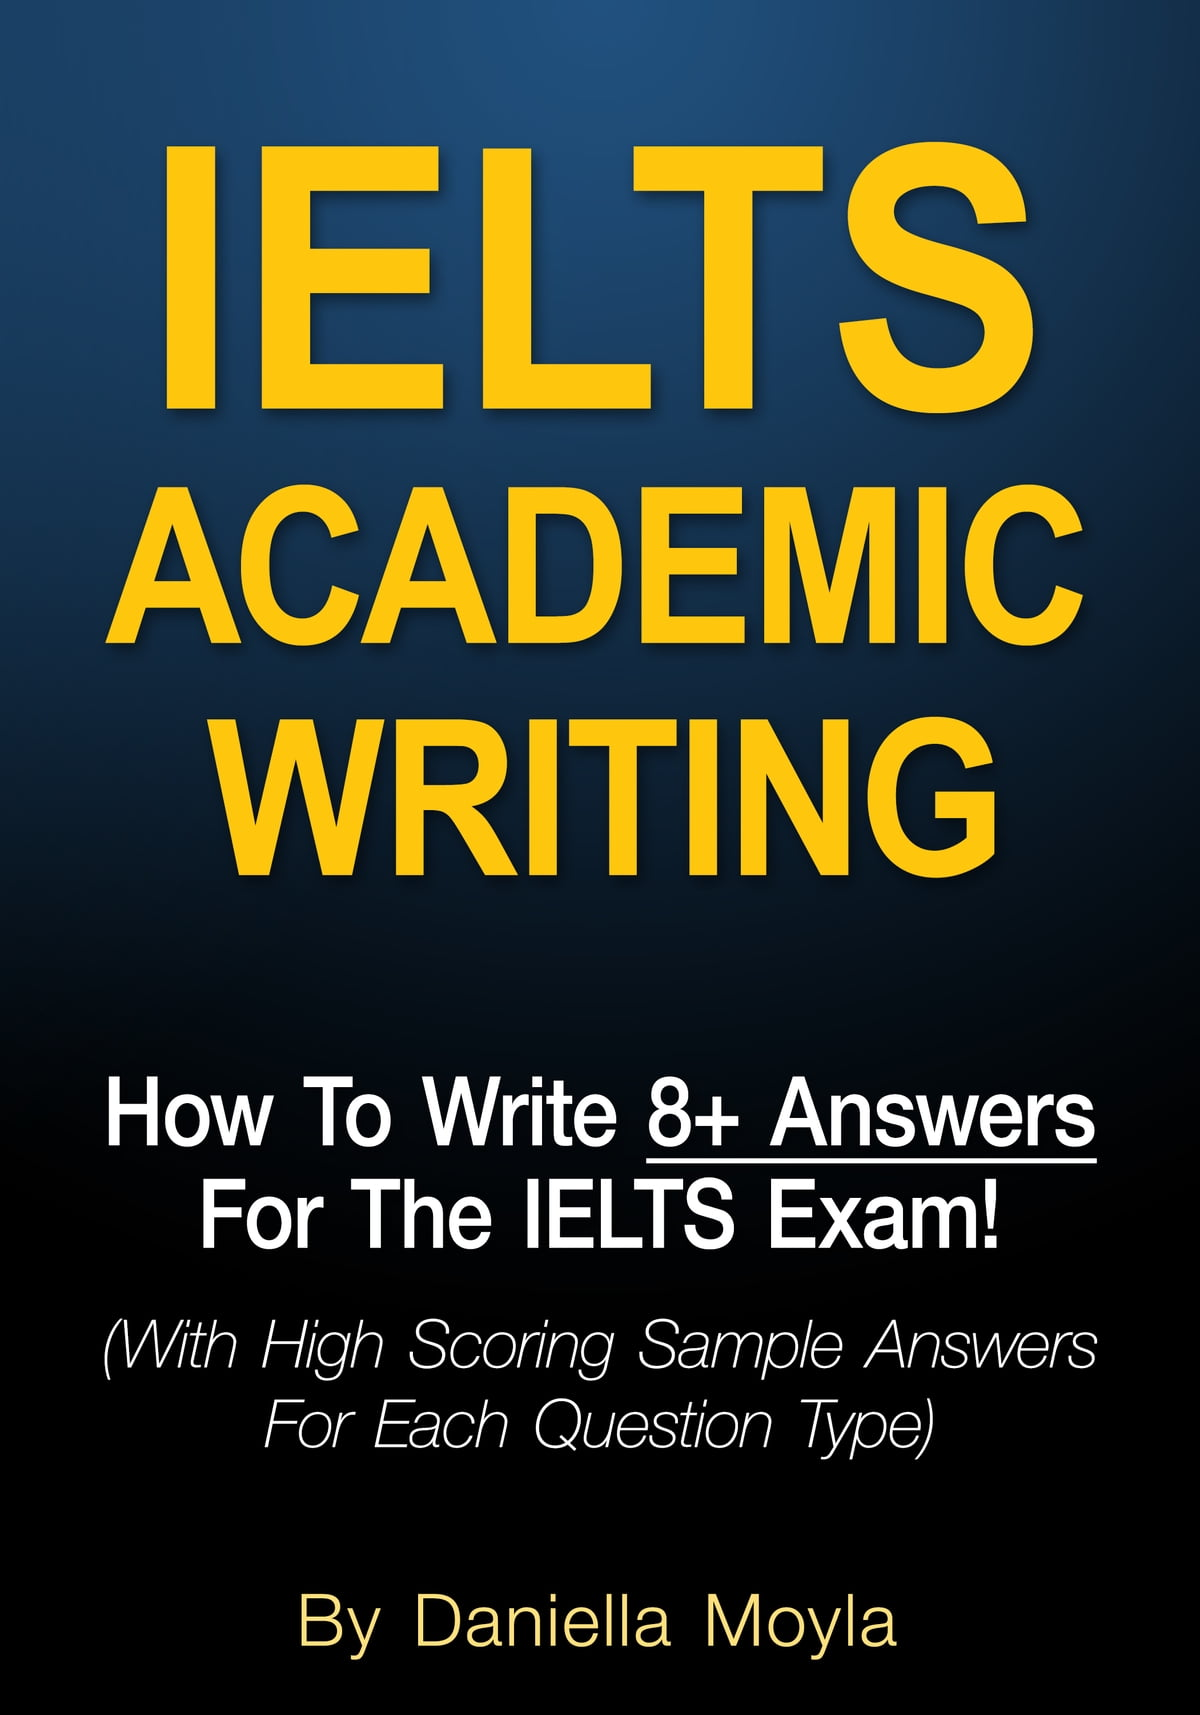 ielts writing pdf with answers